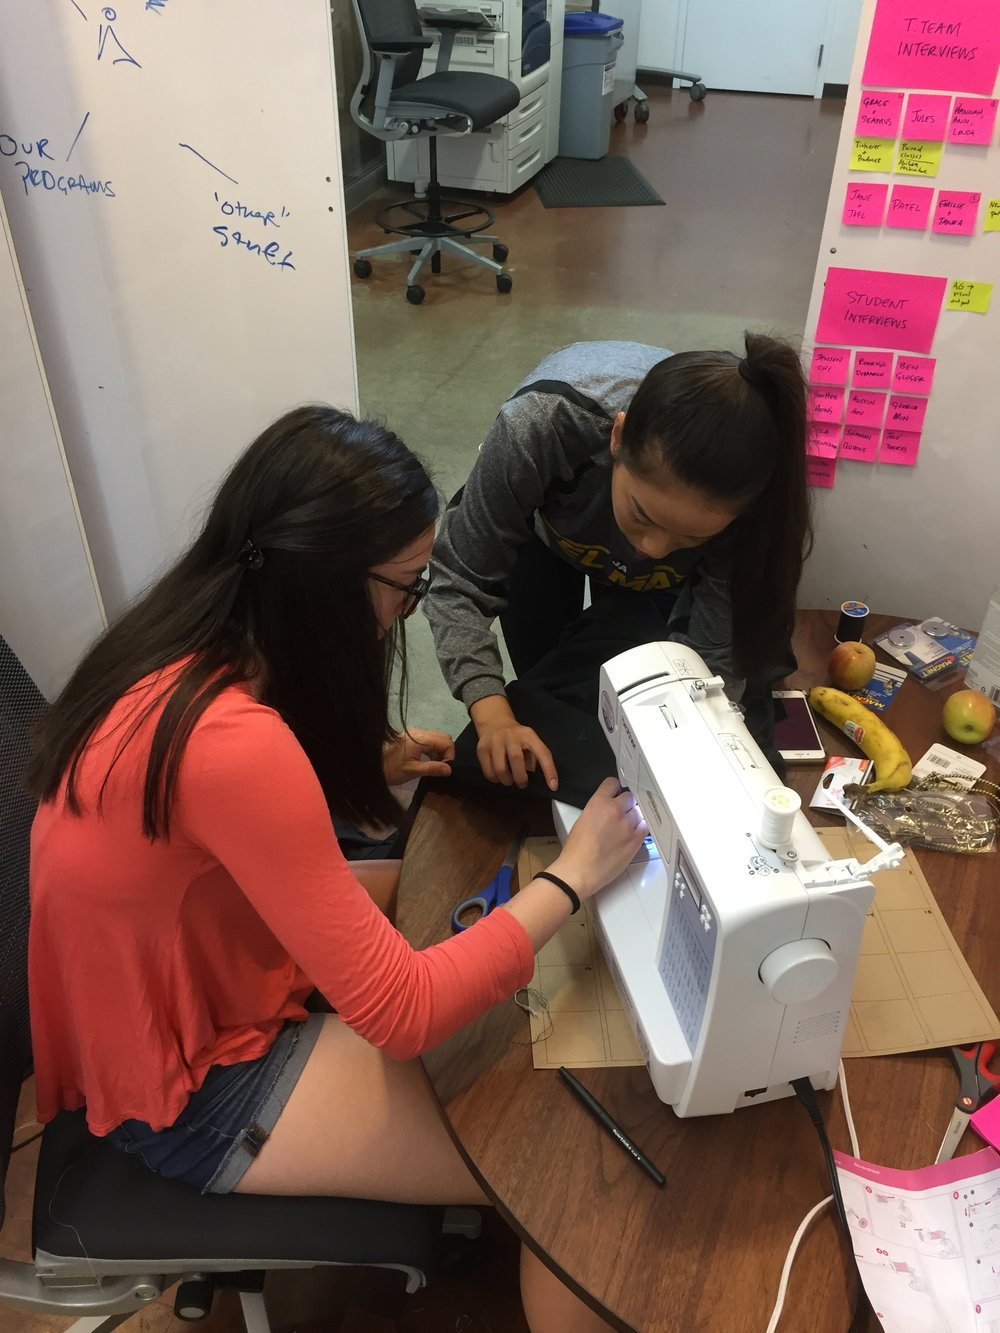 Student using sewing machine